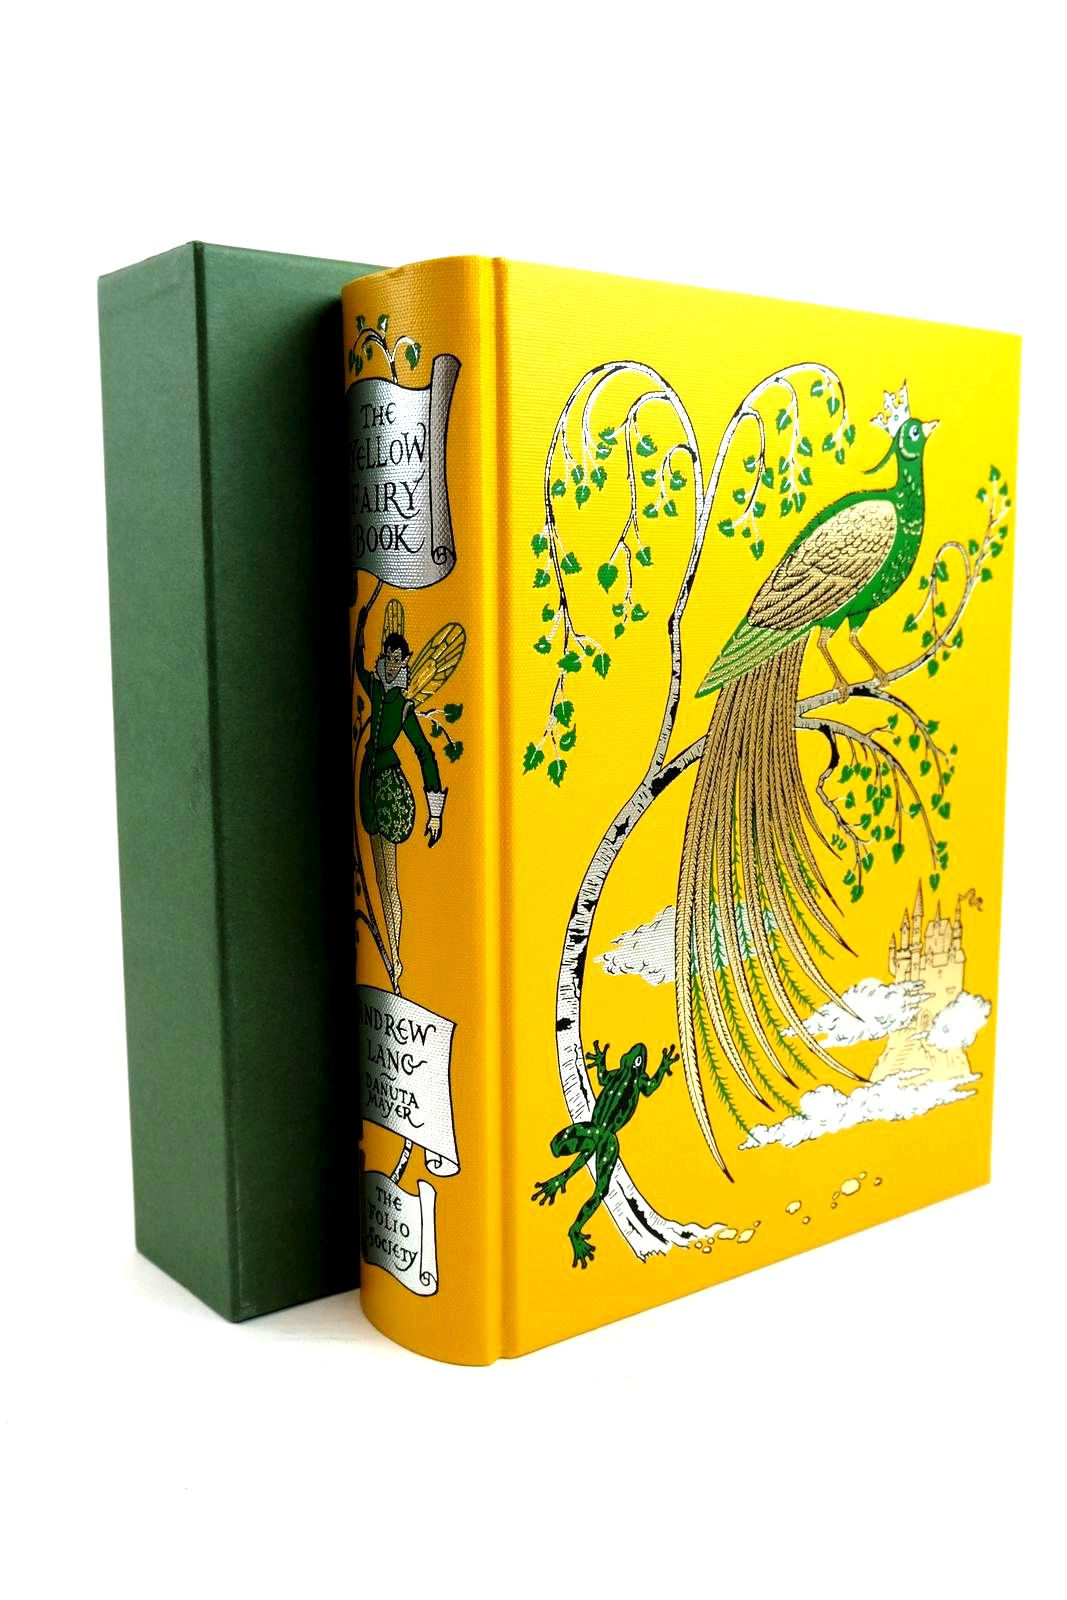 Photo of THE YELLOW FAIRY BOOK written by Lang, Andrew Tatar, Maria illustrated by Mayer, Danuta published by Folio Society (STOCK CODE: 1320685)  for sale by Stella & Rose's Books